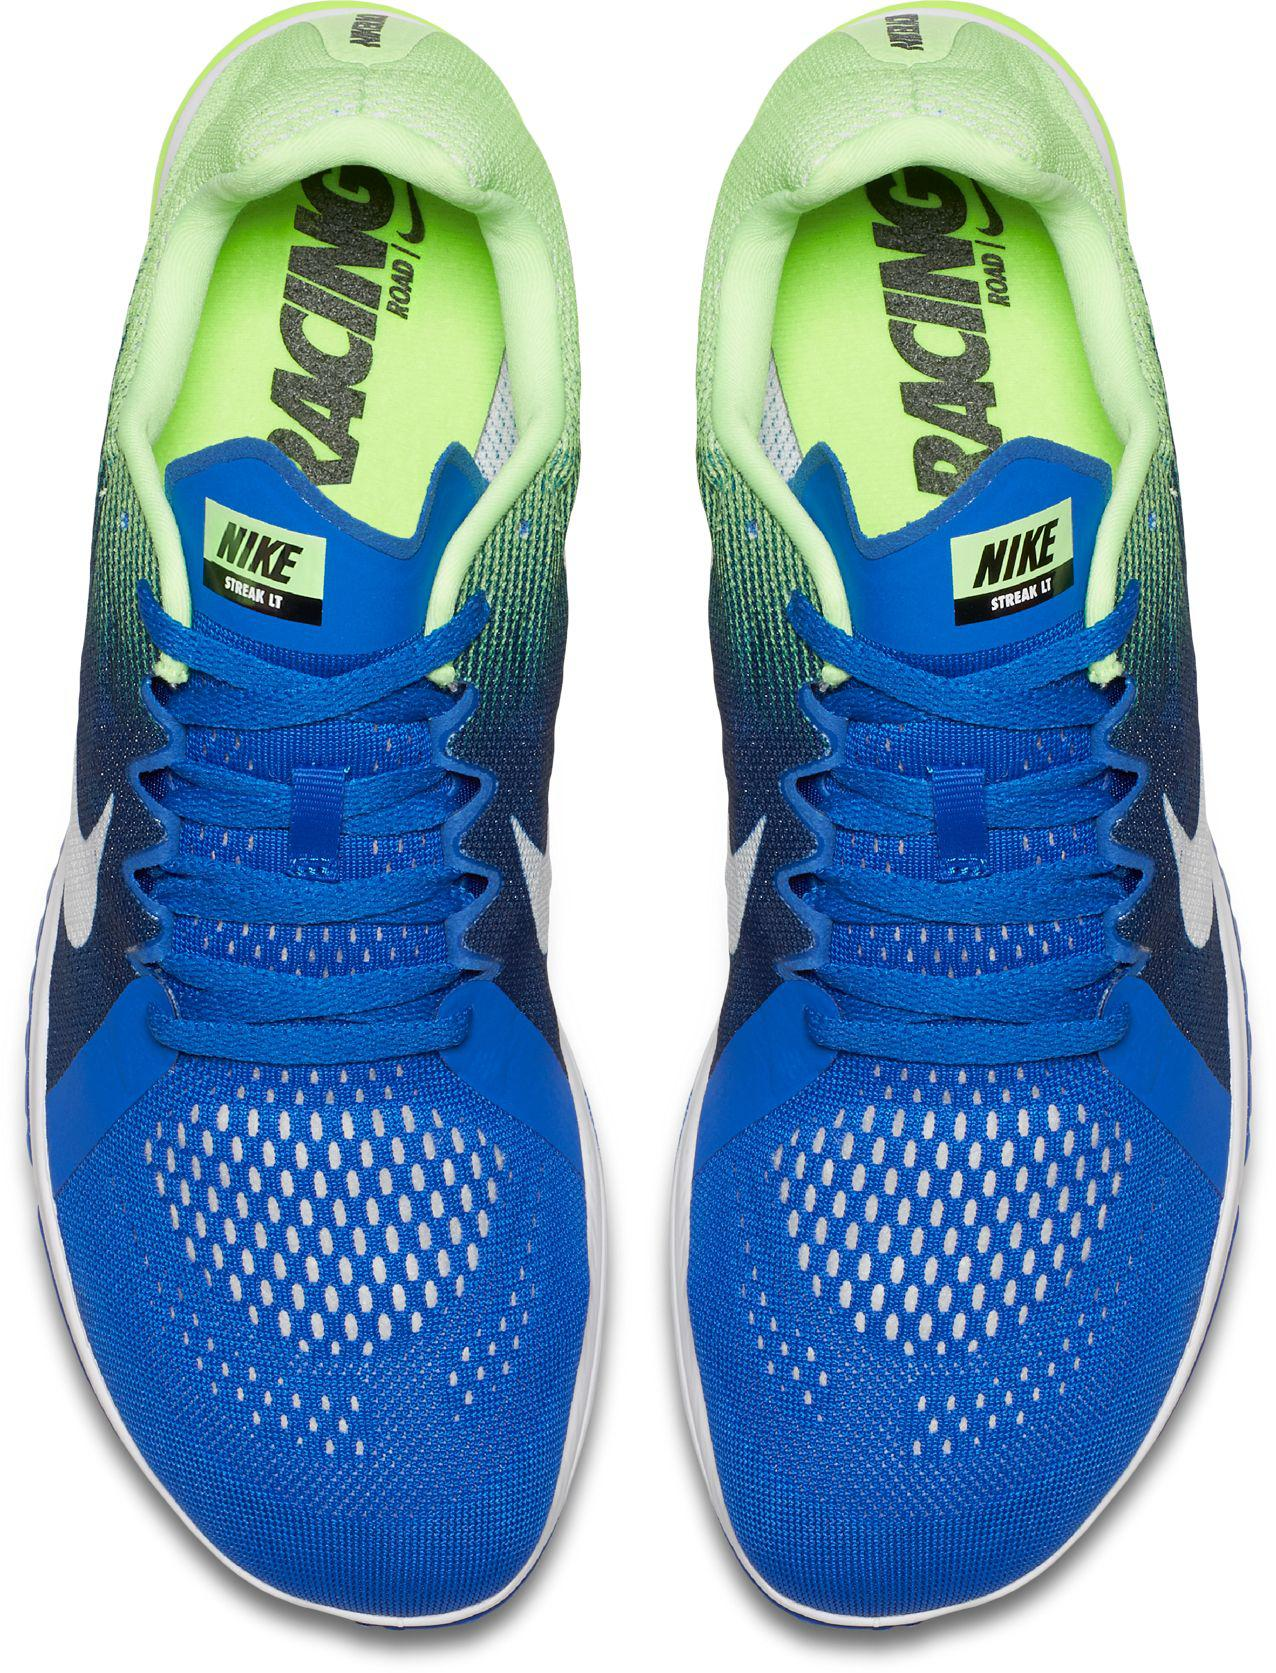 3f1409f664356 Lyst - Nike Zoom Streak Lt 3 Track And Field Shoes in Blue for Men